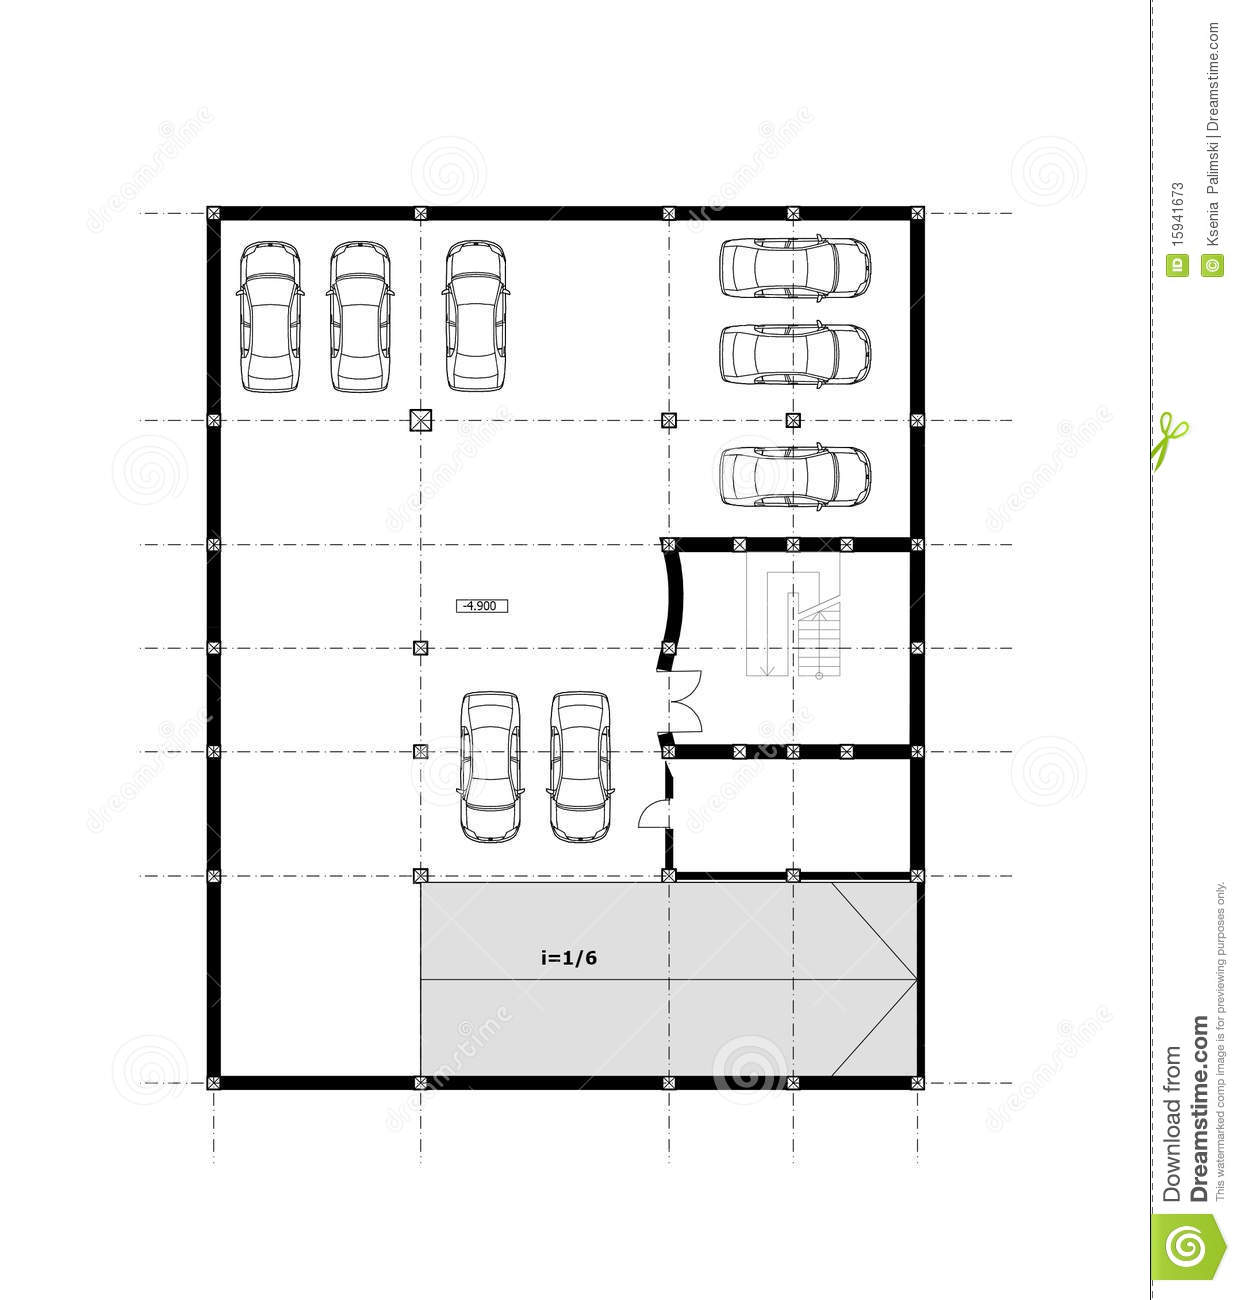 Cad Architectural Plan Drawing Stock Photos